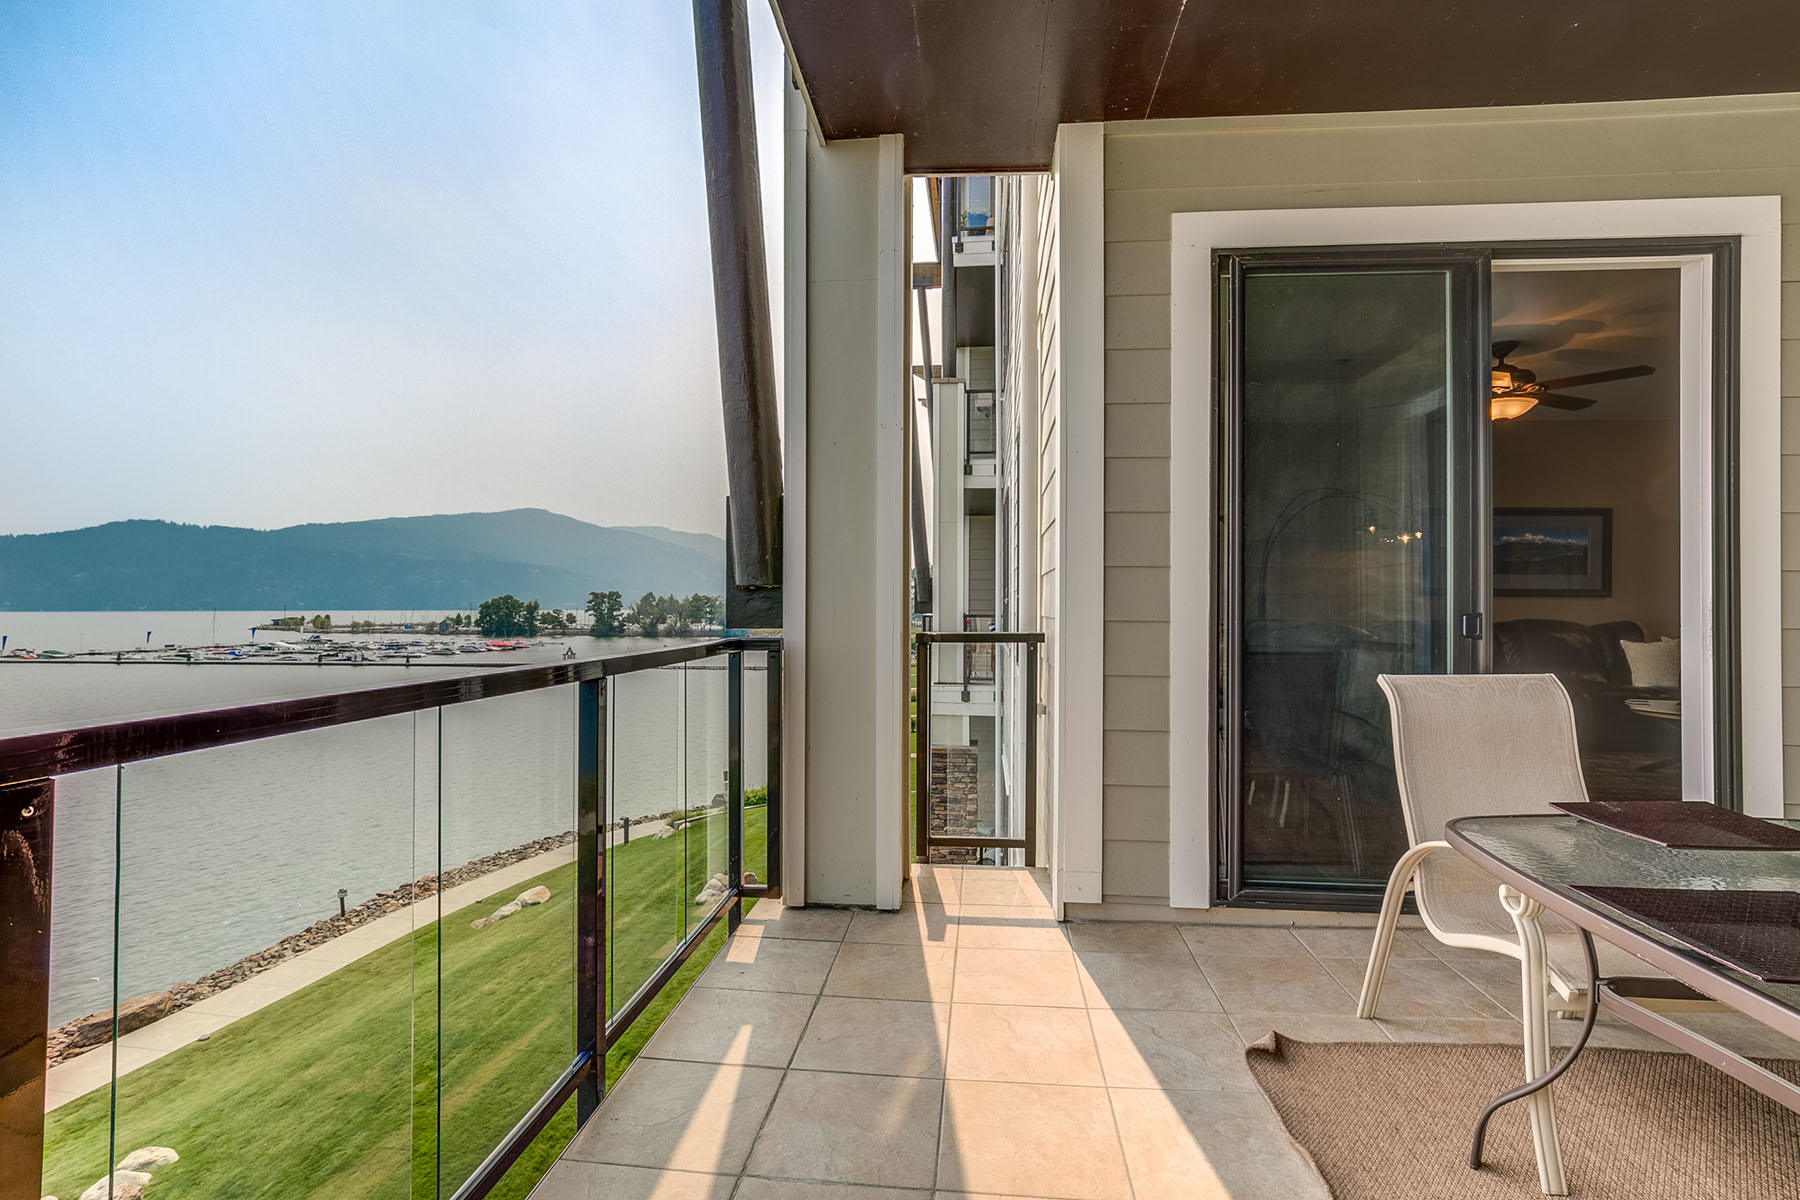 Condominium for Sale at Seasons Unit #7204 702 Sandpoint Ave #7204, Sandpoint, Idaho, 83864 United States